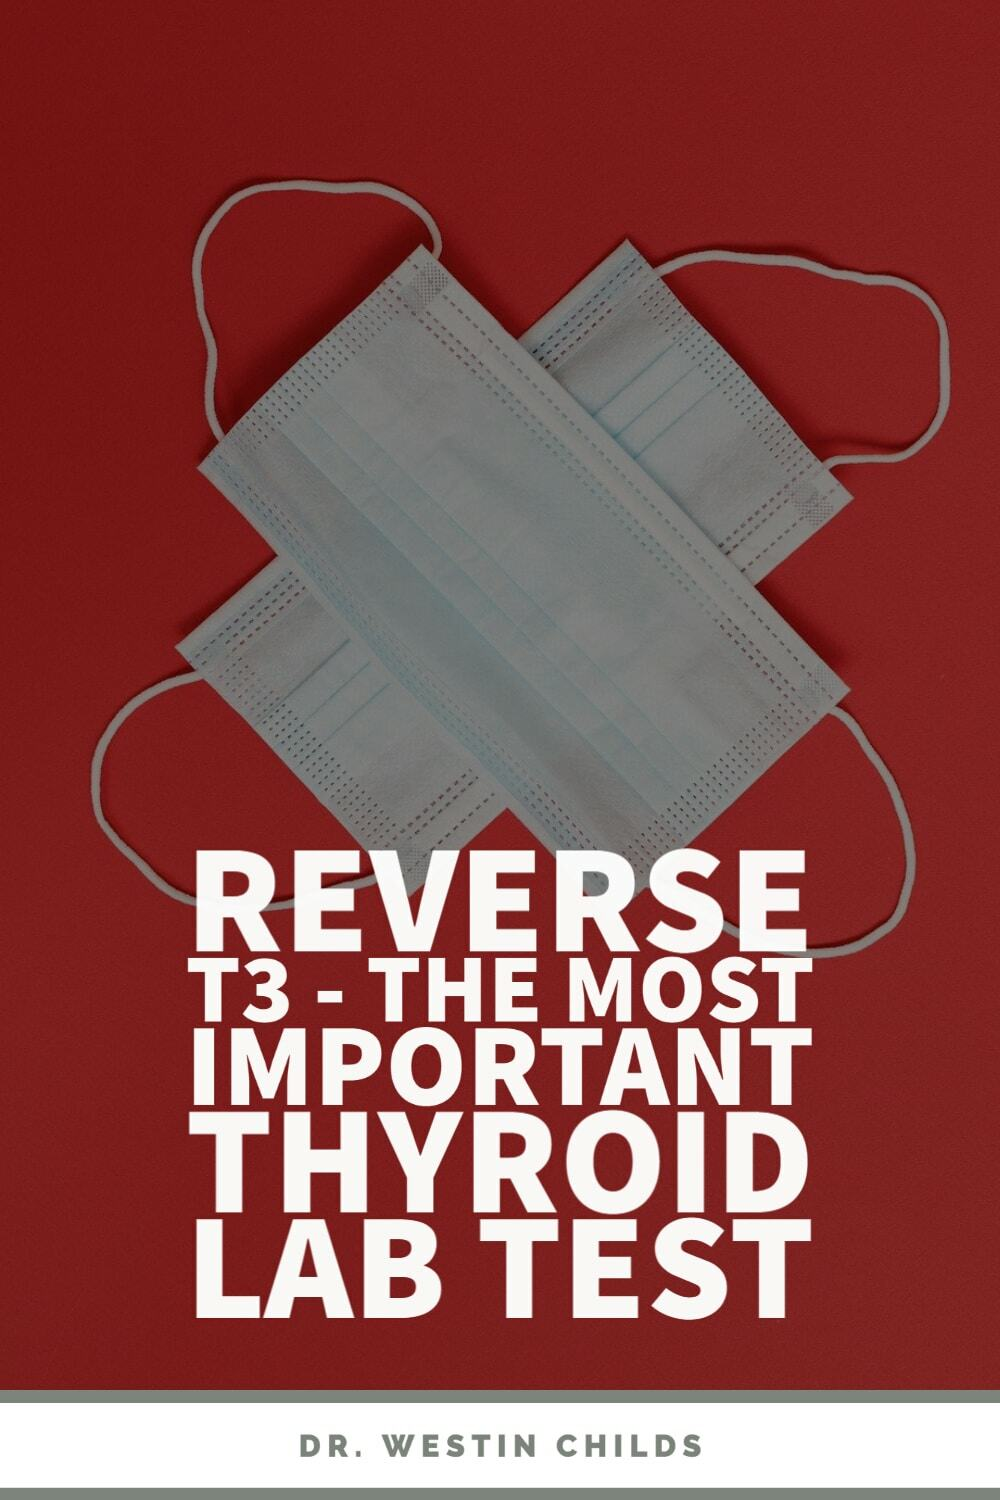 reverse T3 - the most important thyroid lab test